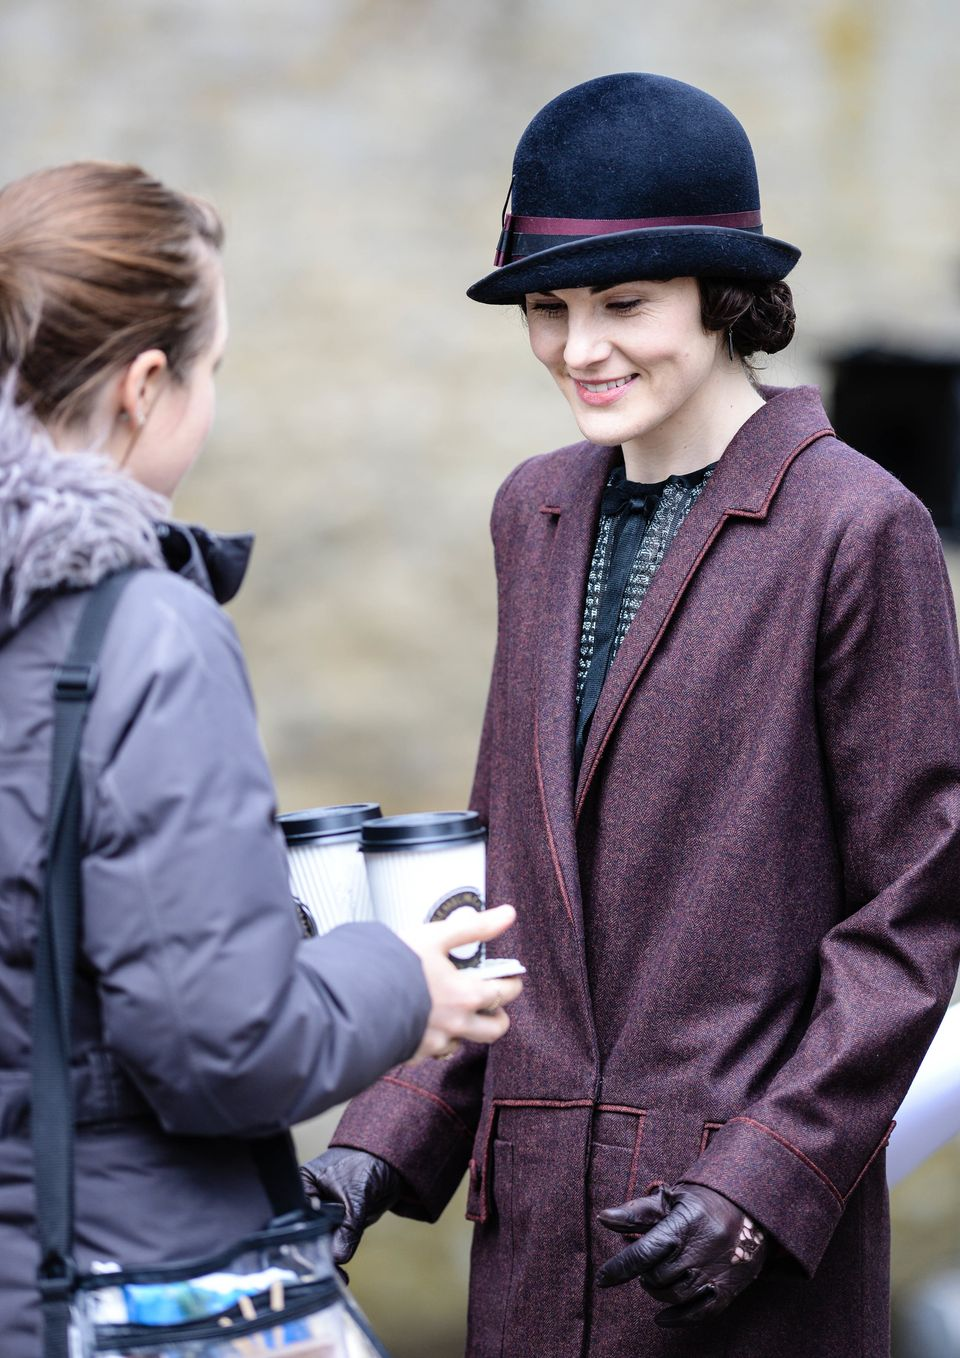 Who knew Lady Mary was such a coffee drinker?